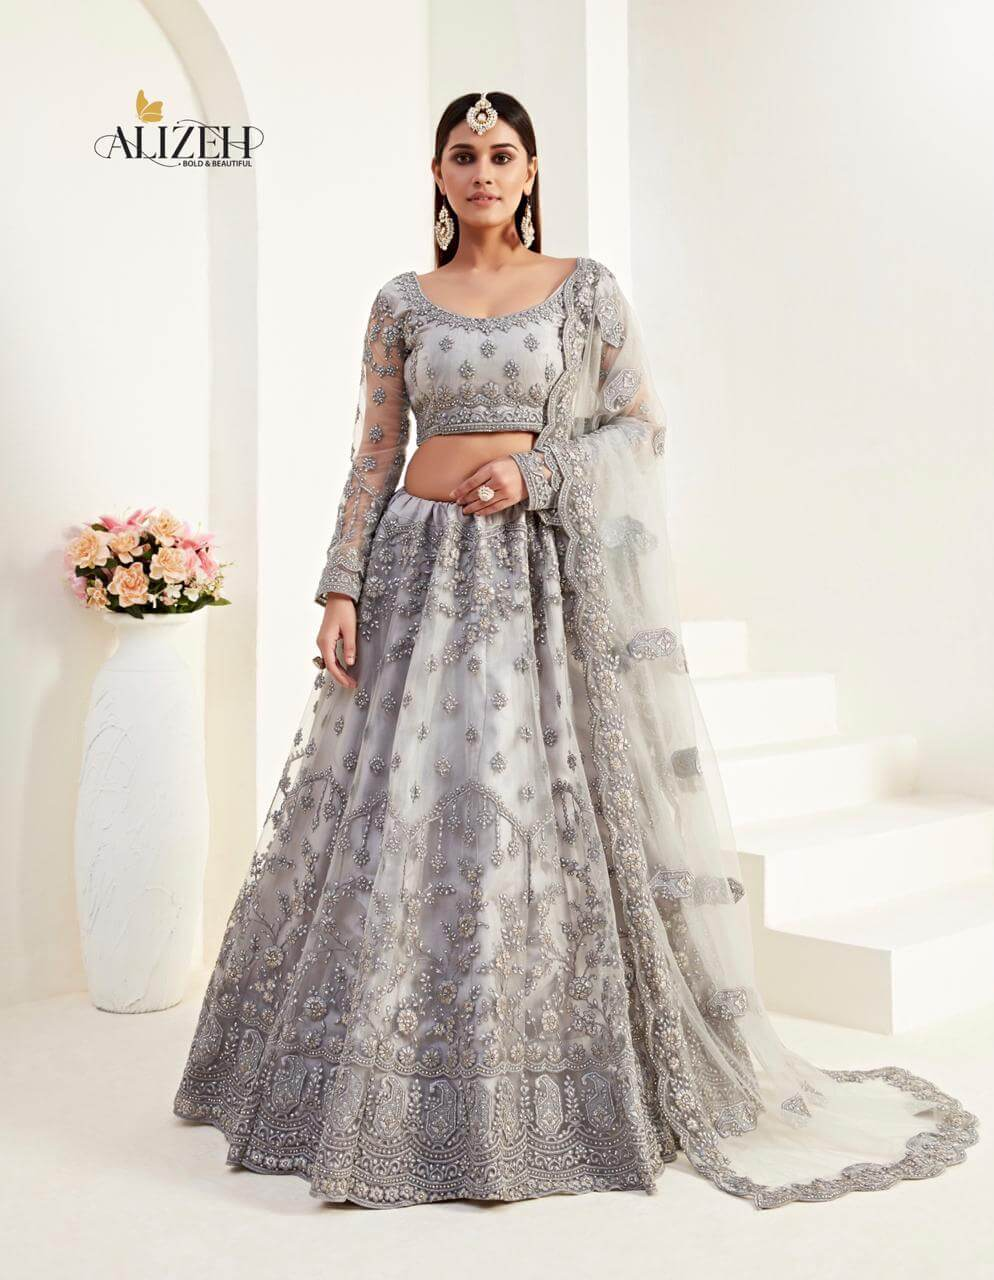 Alizeh Bridal Heritage Vol 2 collection 2